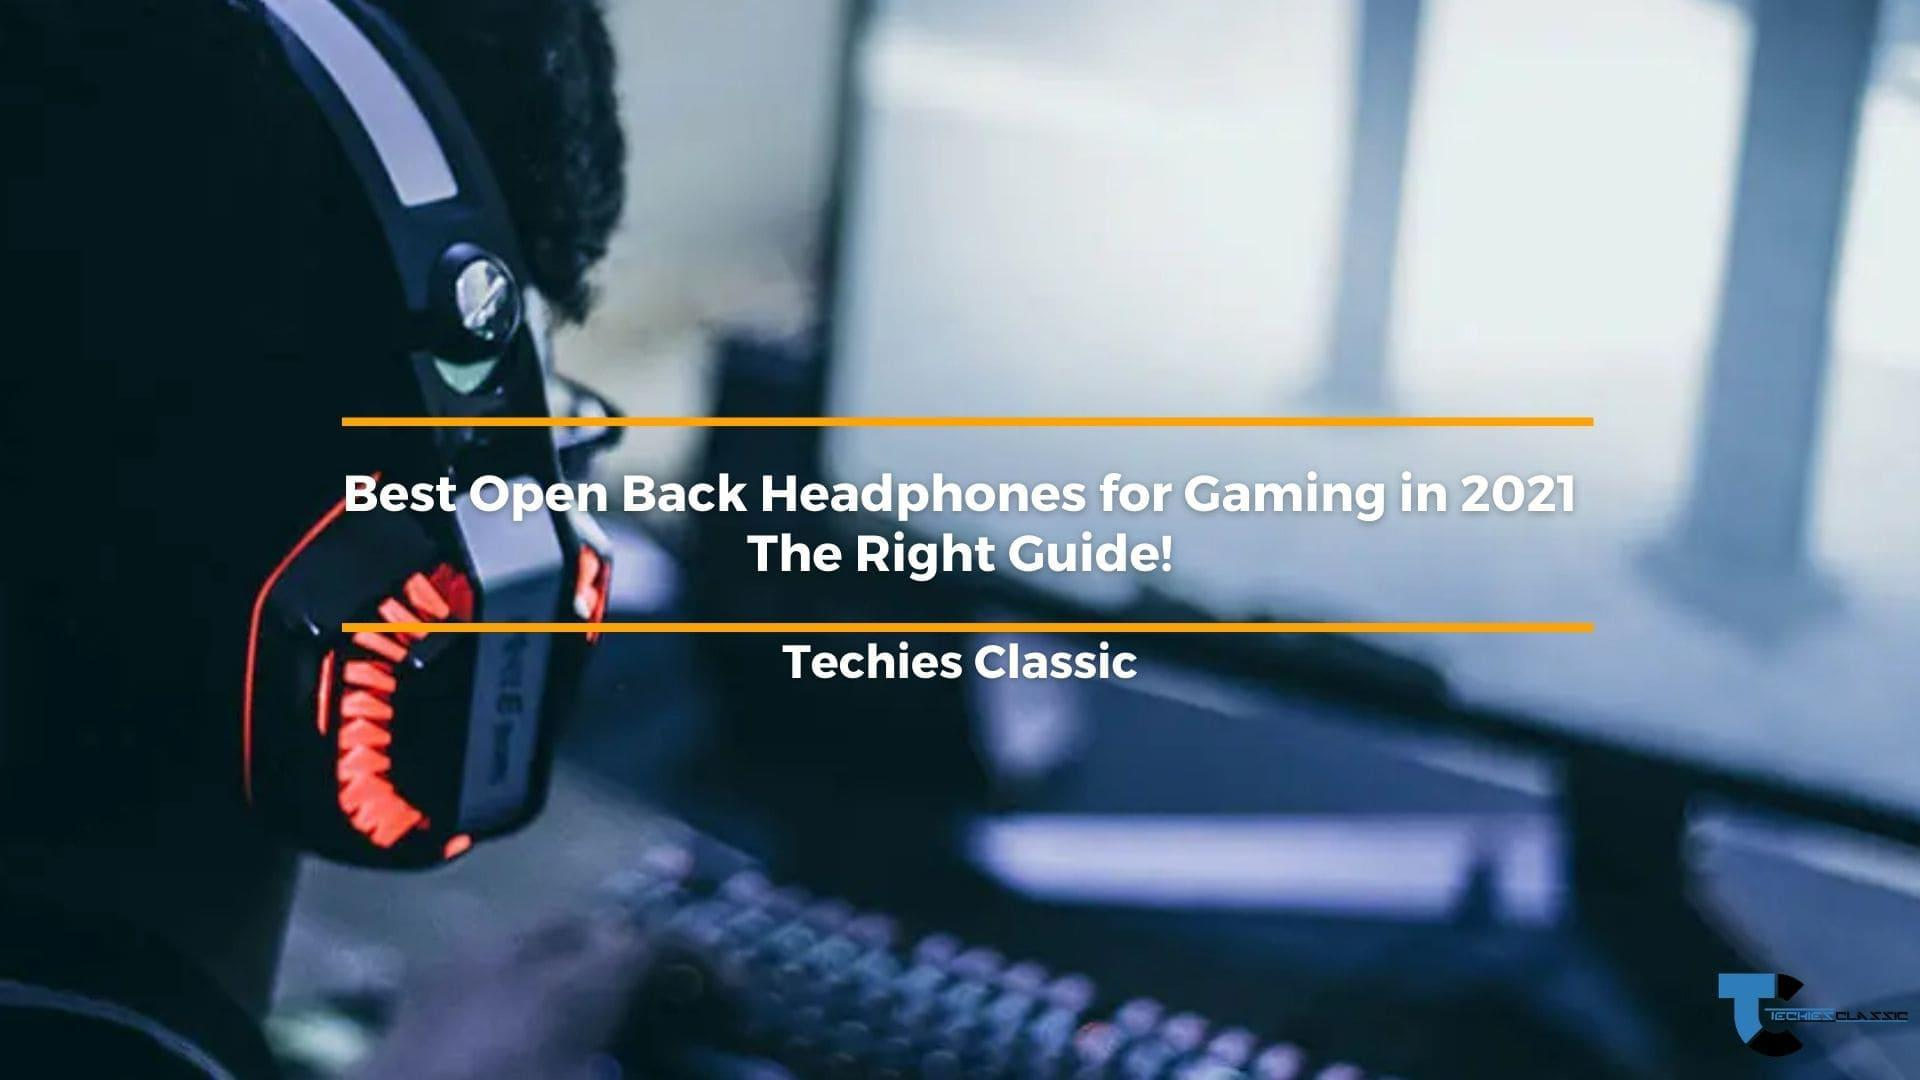 Best Open Back Headphones for Gaming in 2021- A Right Guide